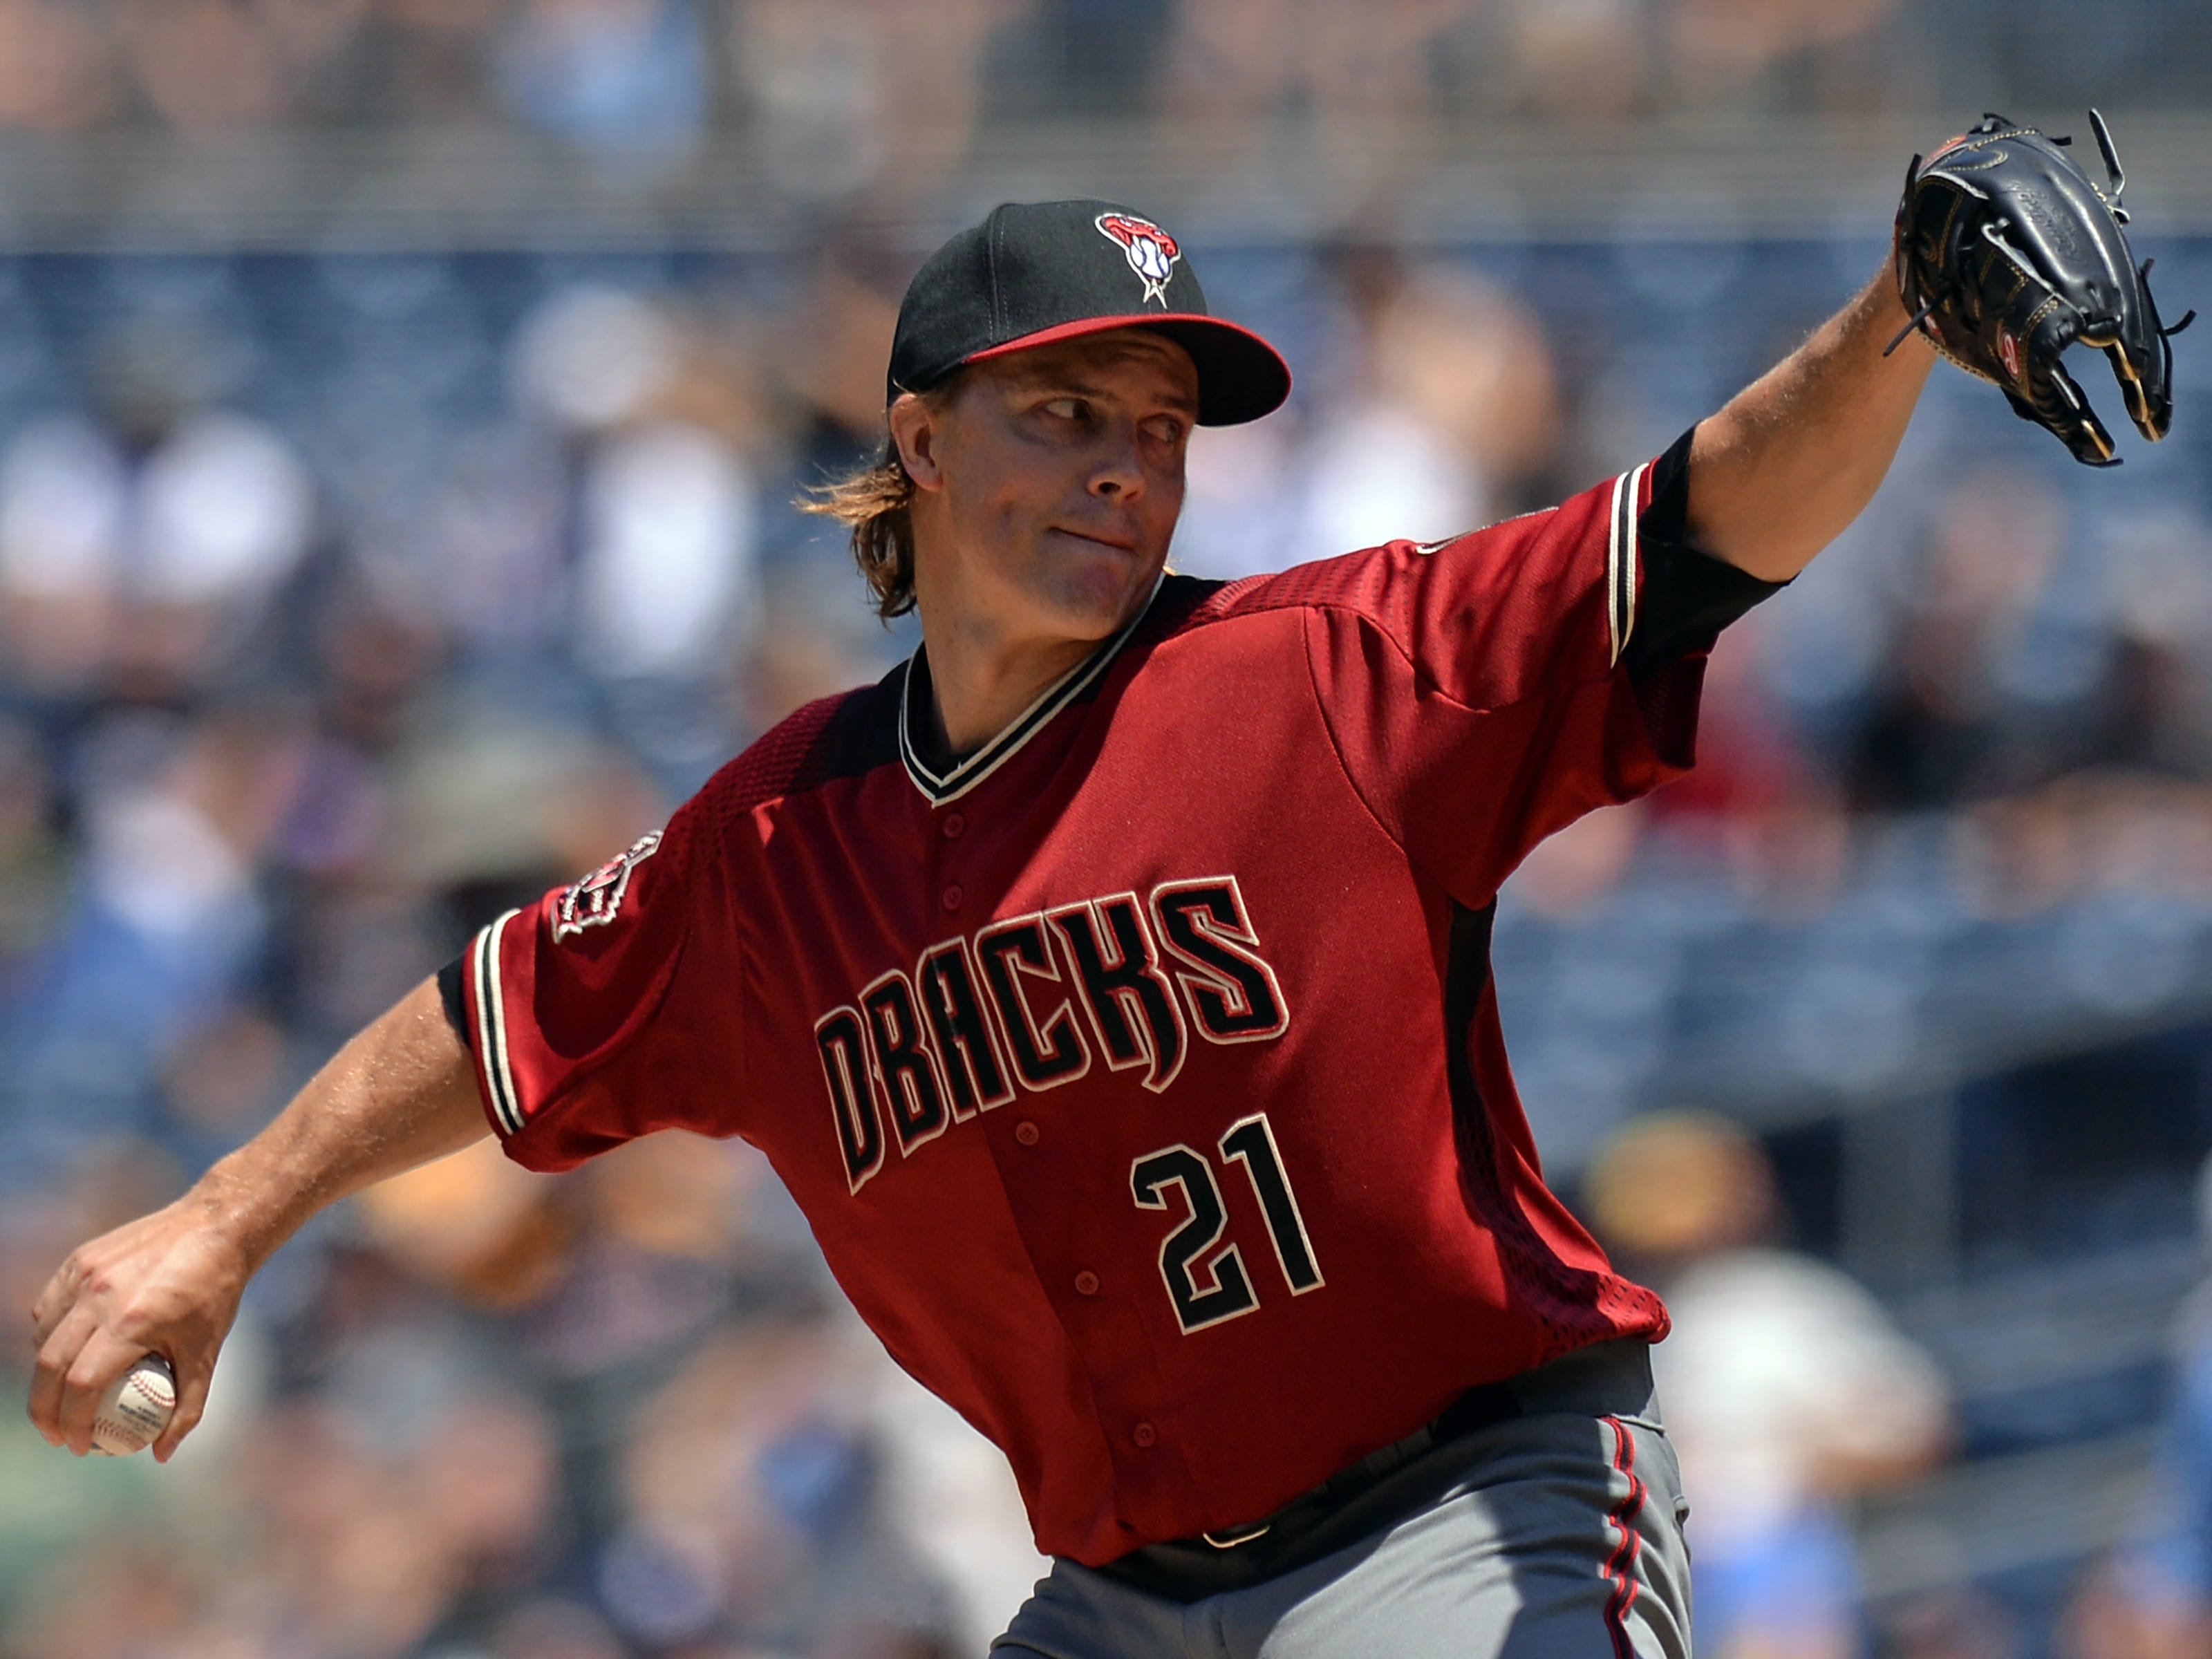 Aug 19, 2018; San Diego, CA, USA; Arizona Diamondbacks starting pitcher Zack Greinke (21) pitches during the first inning against the San Diego Padres at Petco Park. Mandatory Credit: Jake Roth-USA TODAY Sports